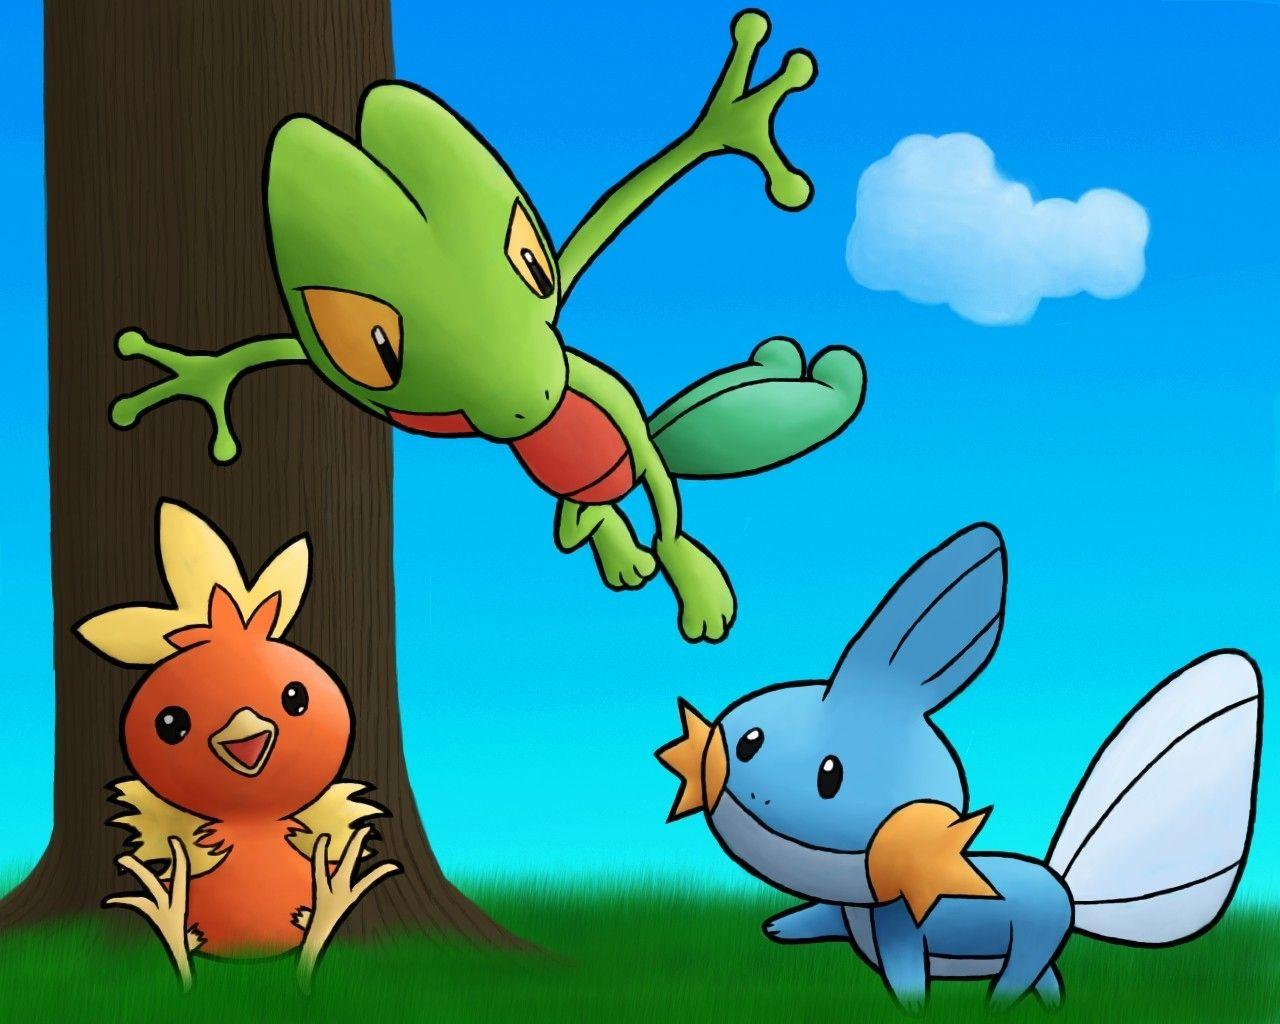 pokemon mudkip treecko torchic 1280x1024 wallpapers High Quality